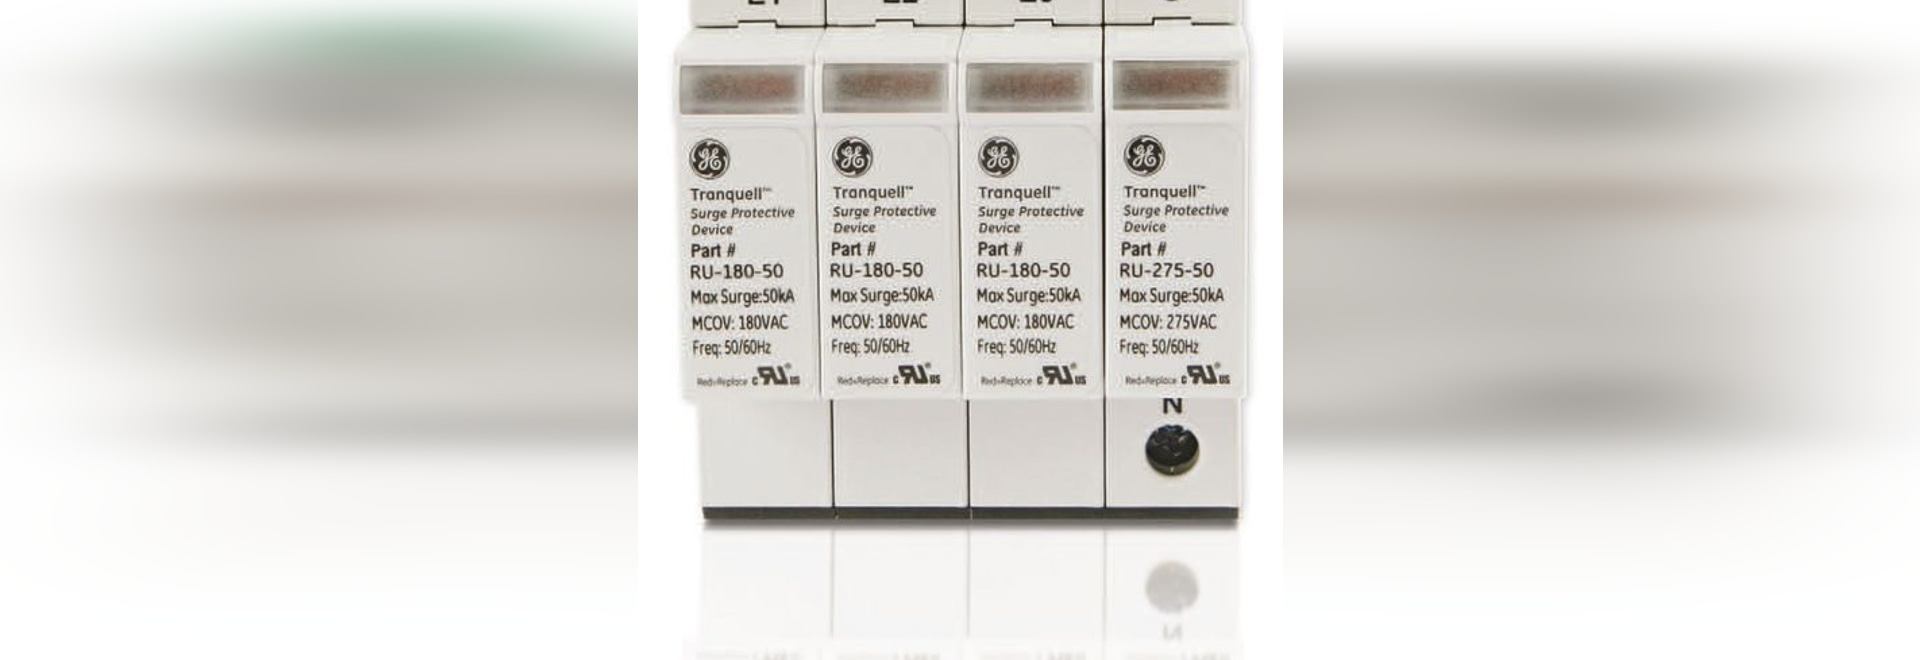 NEW: type 1 surge arrester by GE Automatic Transfer Switches - GE ...